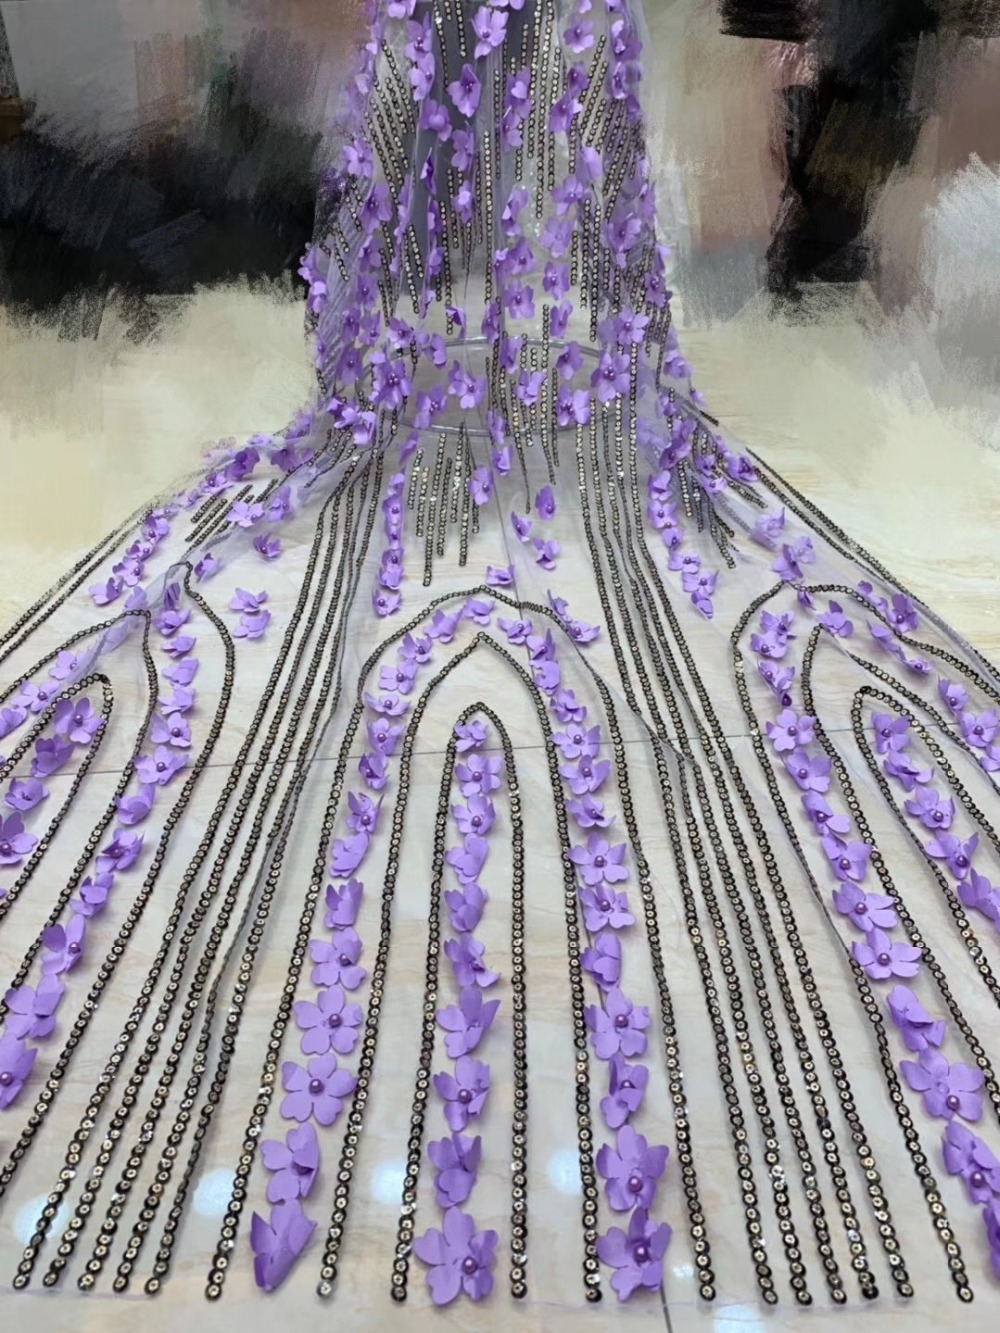 African Lace Fabric 2019 Embroidered Nigerian Laces Fabric Bridal High Quality French Tulle Lace Fabric For Wedding    JXINAP201African Lace Fabric 2019 Embroidered Nigerian Laces Fabric Bridal High Quality French Tulle Lace Fabric For Wedding    JXINAP201